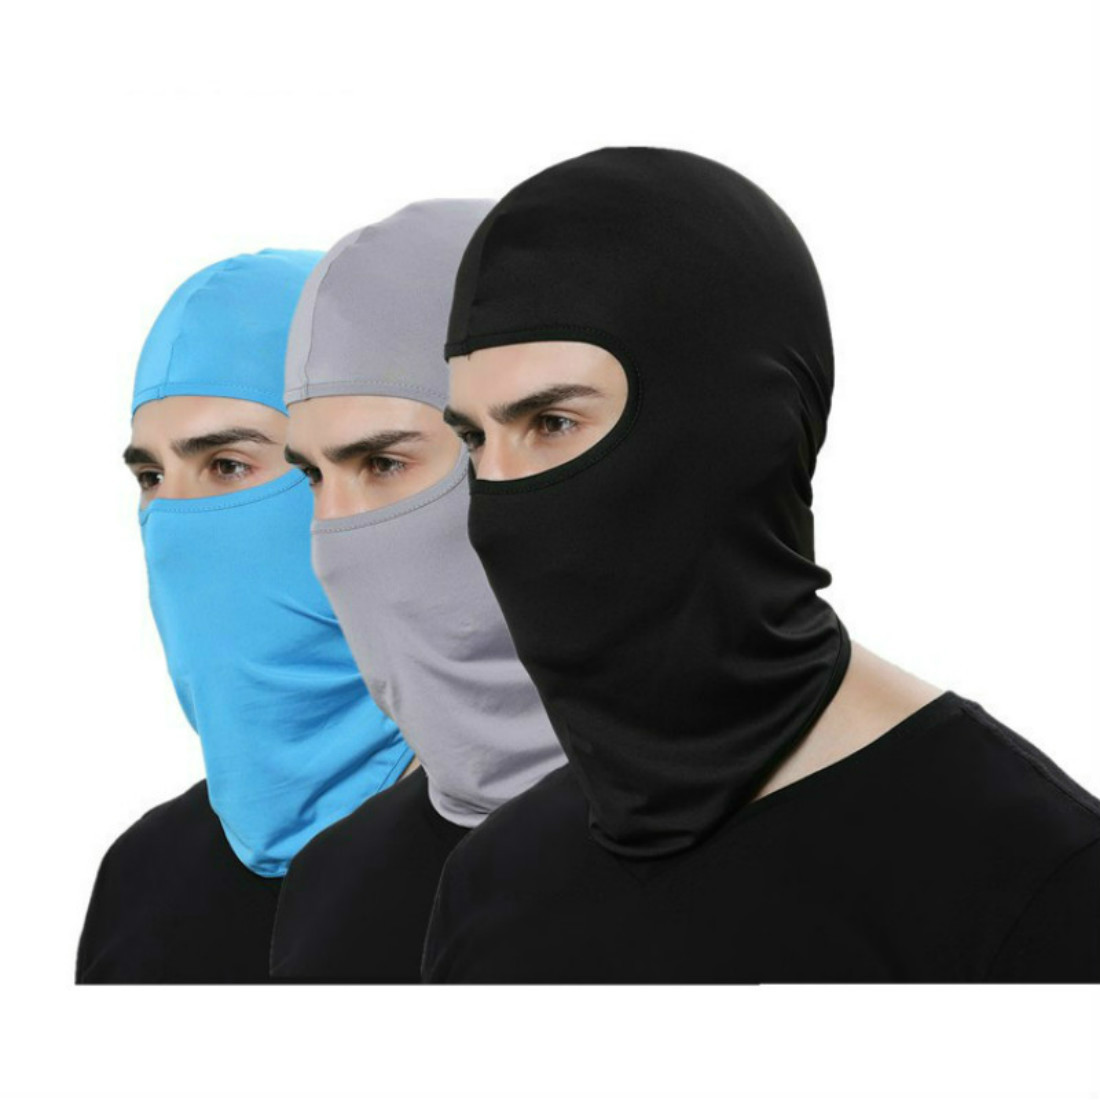 2018 Motorcycle Face Mask Moto Winter Warm Ski Snowboard Outdoor Sports Neck Wind Cap Police Cycling Balaclavas Face Mask outdoor sports cycling cotton face mask black